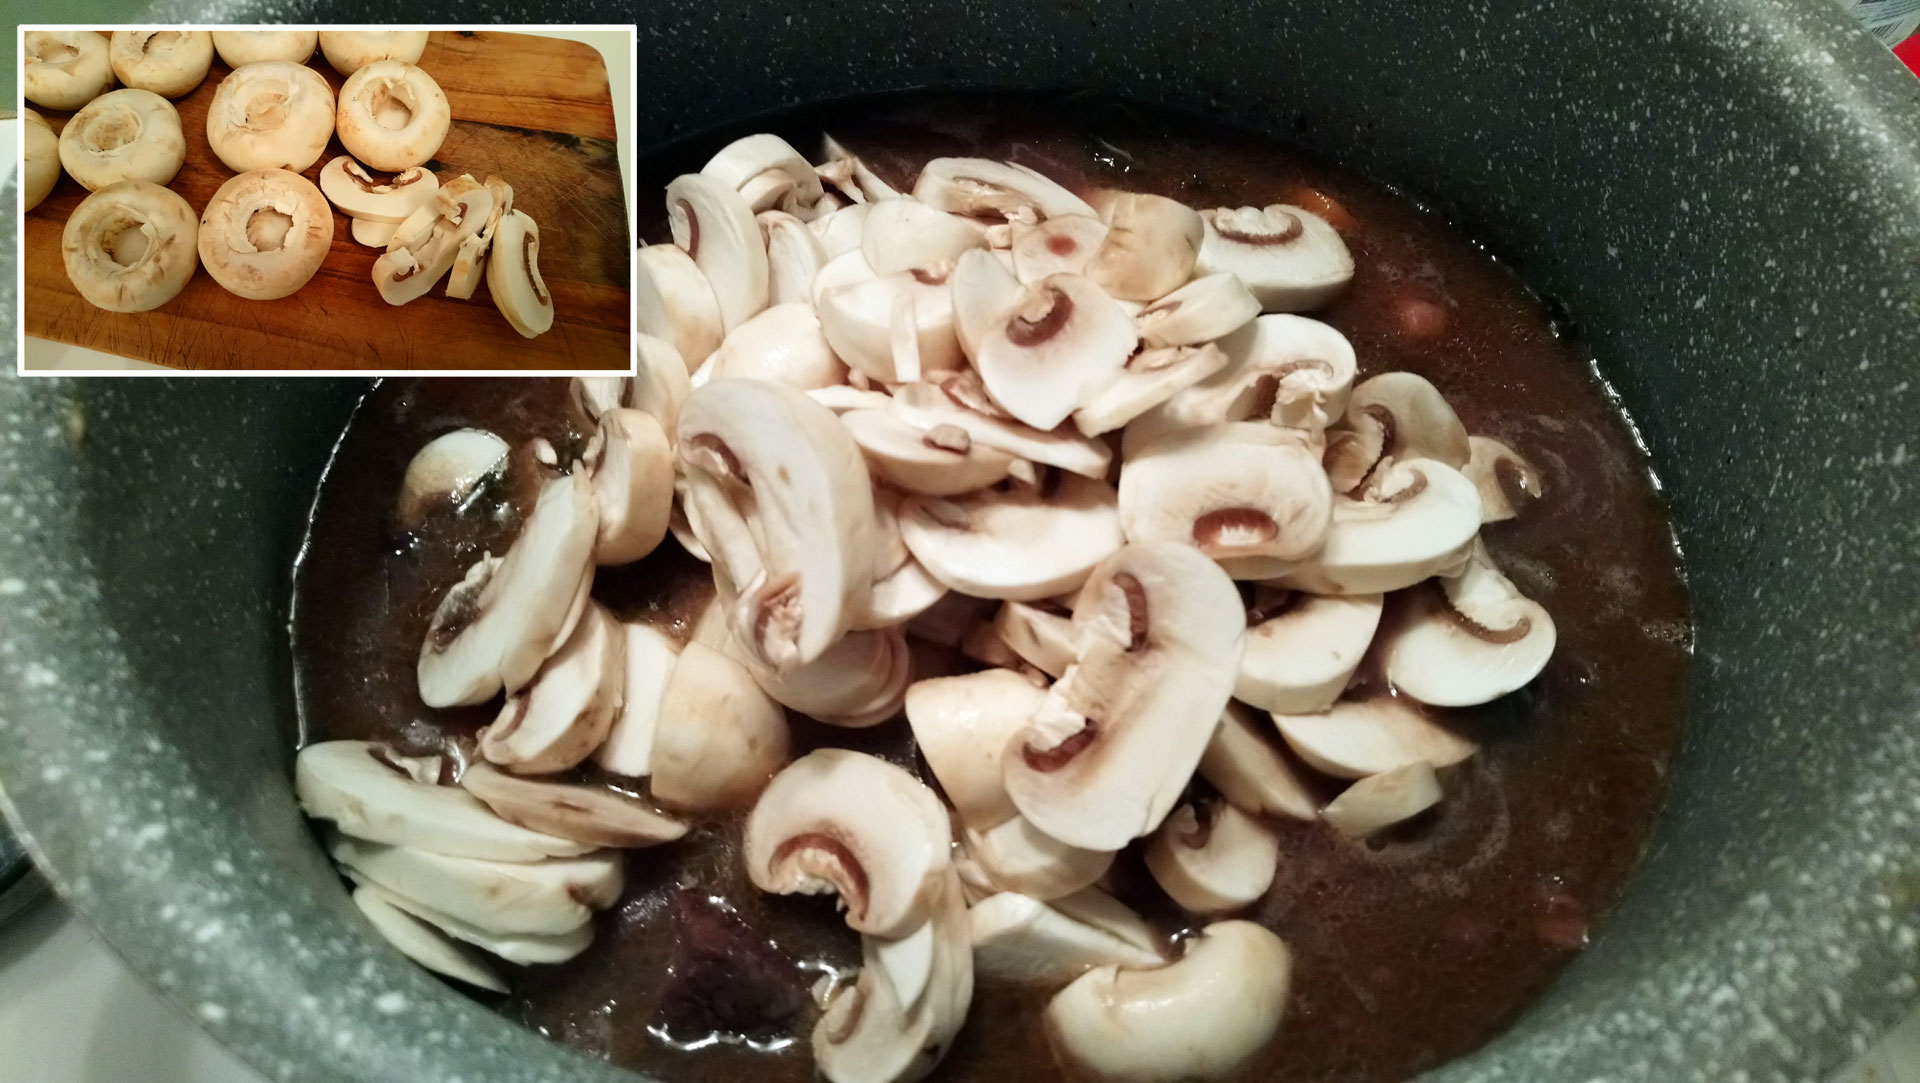 Chop the mushrooms and add them to the pot.